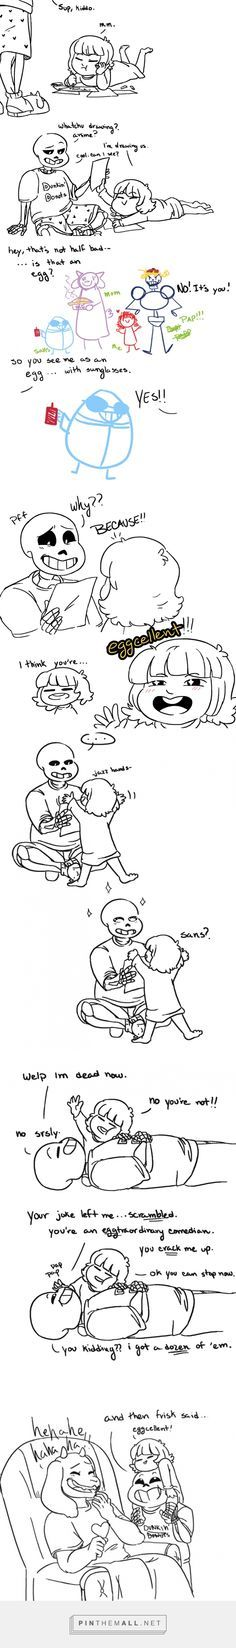 omg the egg puns. I should send this to eggsavier and his friend deadbeat soham